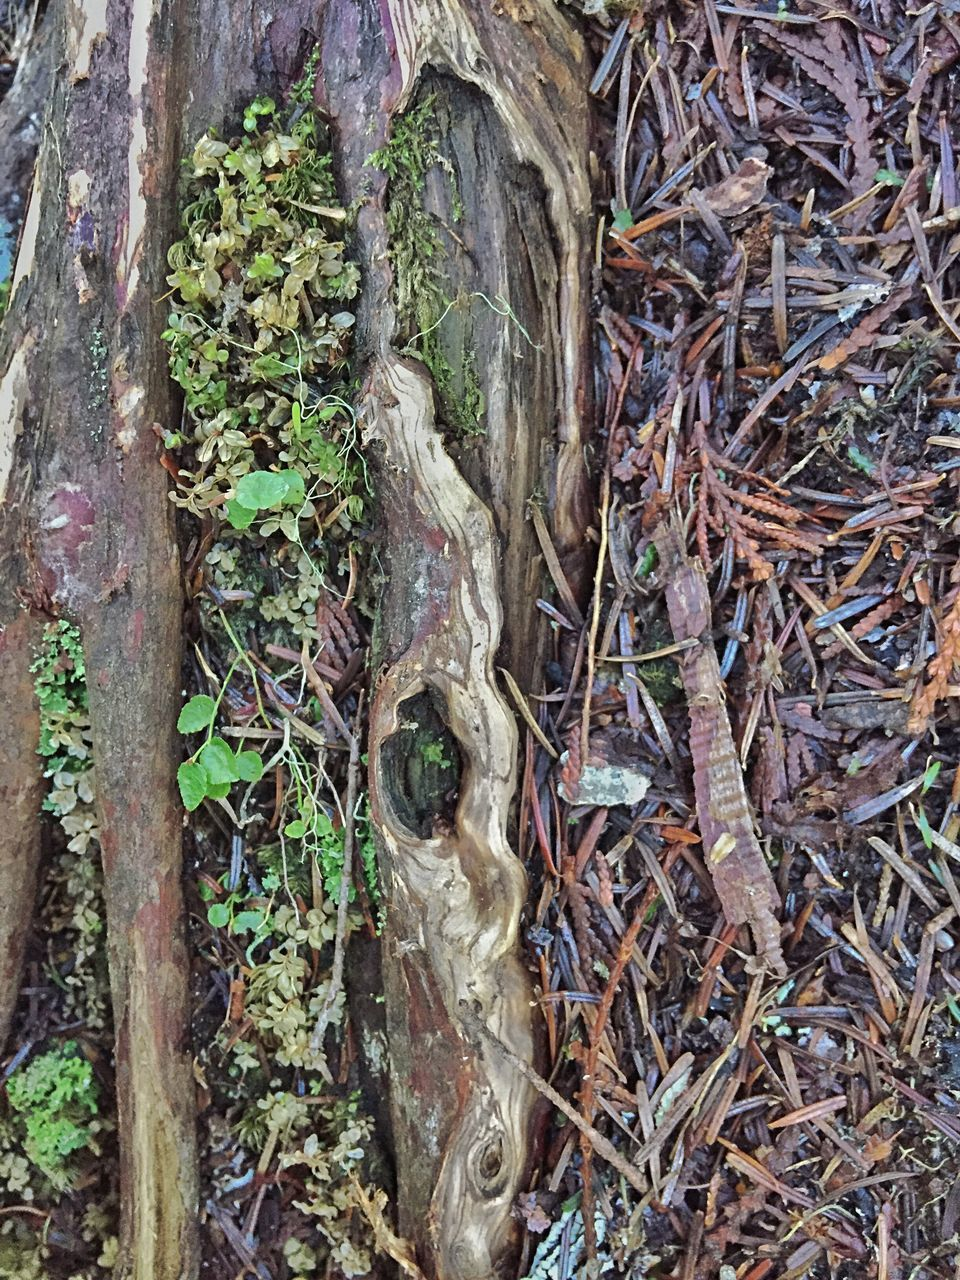 tree trunk, growth, day, outdoors, tree, no people, close-up, bark, nature, plant, textured, moss, lichen, forest